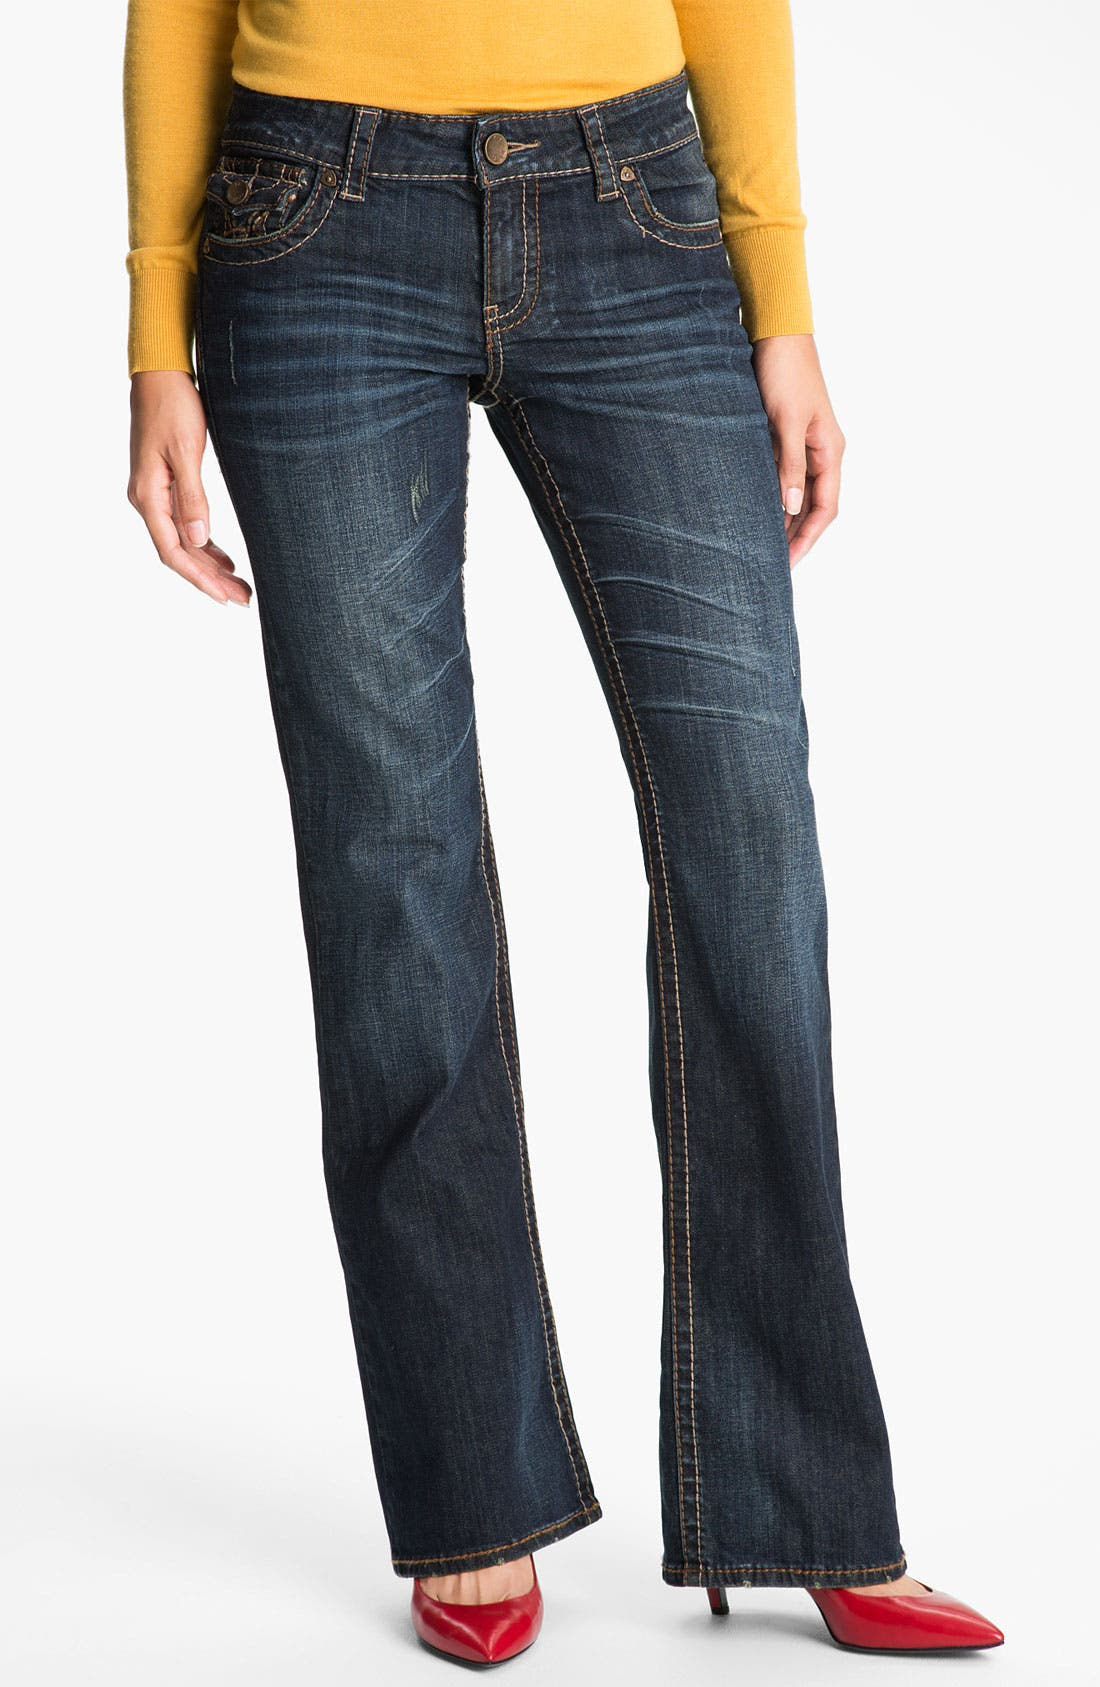 Main Image - KUT from the Kloth 'Kate' Bootcut Jeans (Proud) (Online Only)